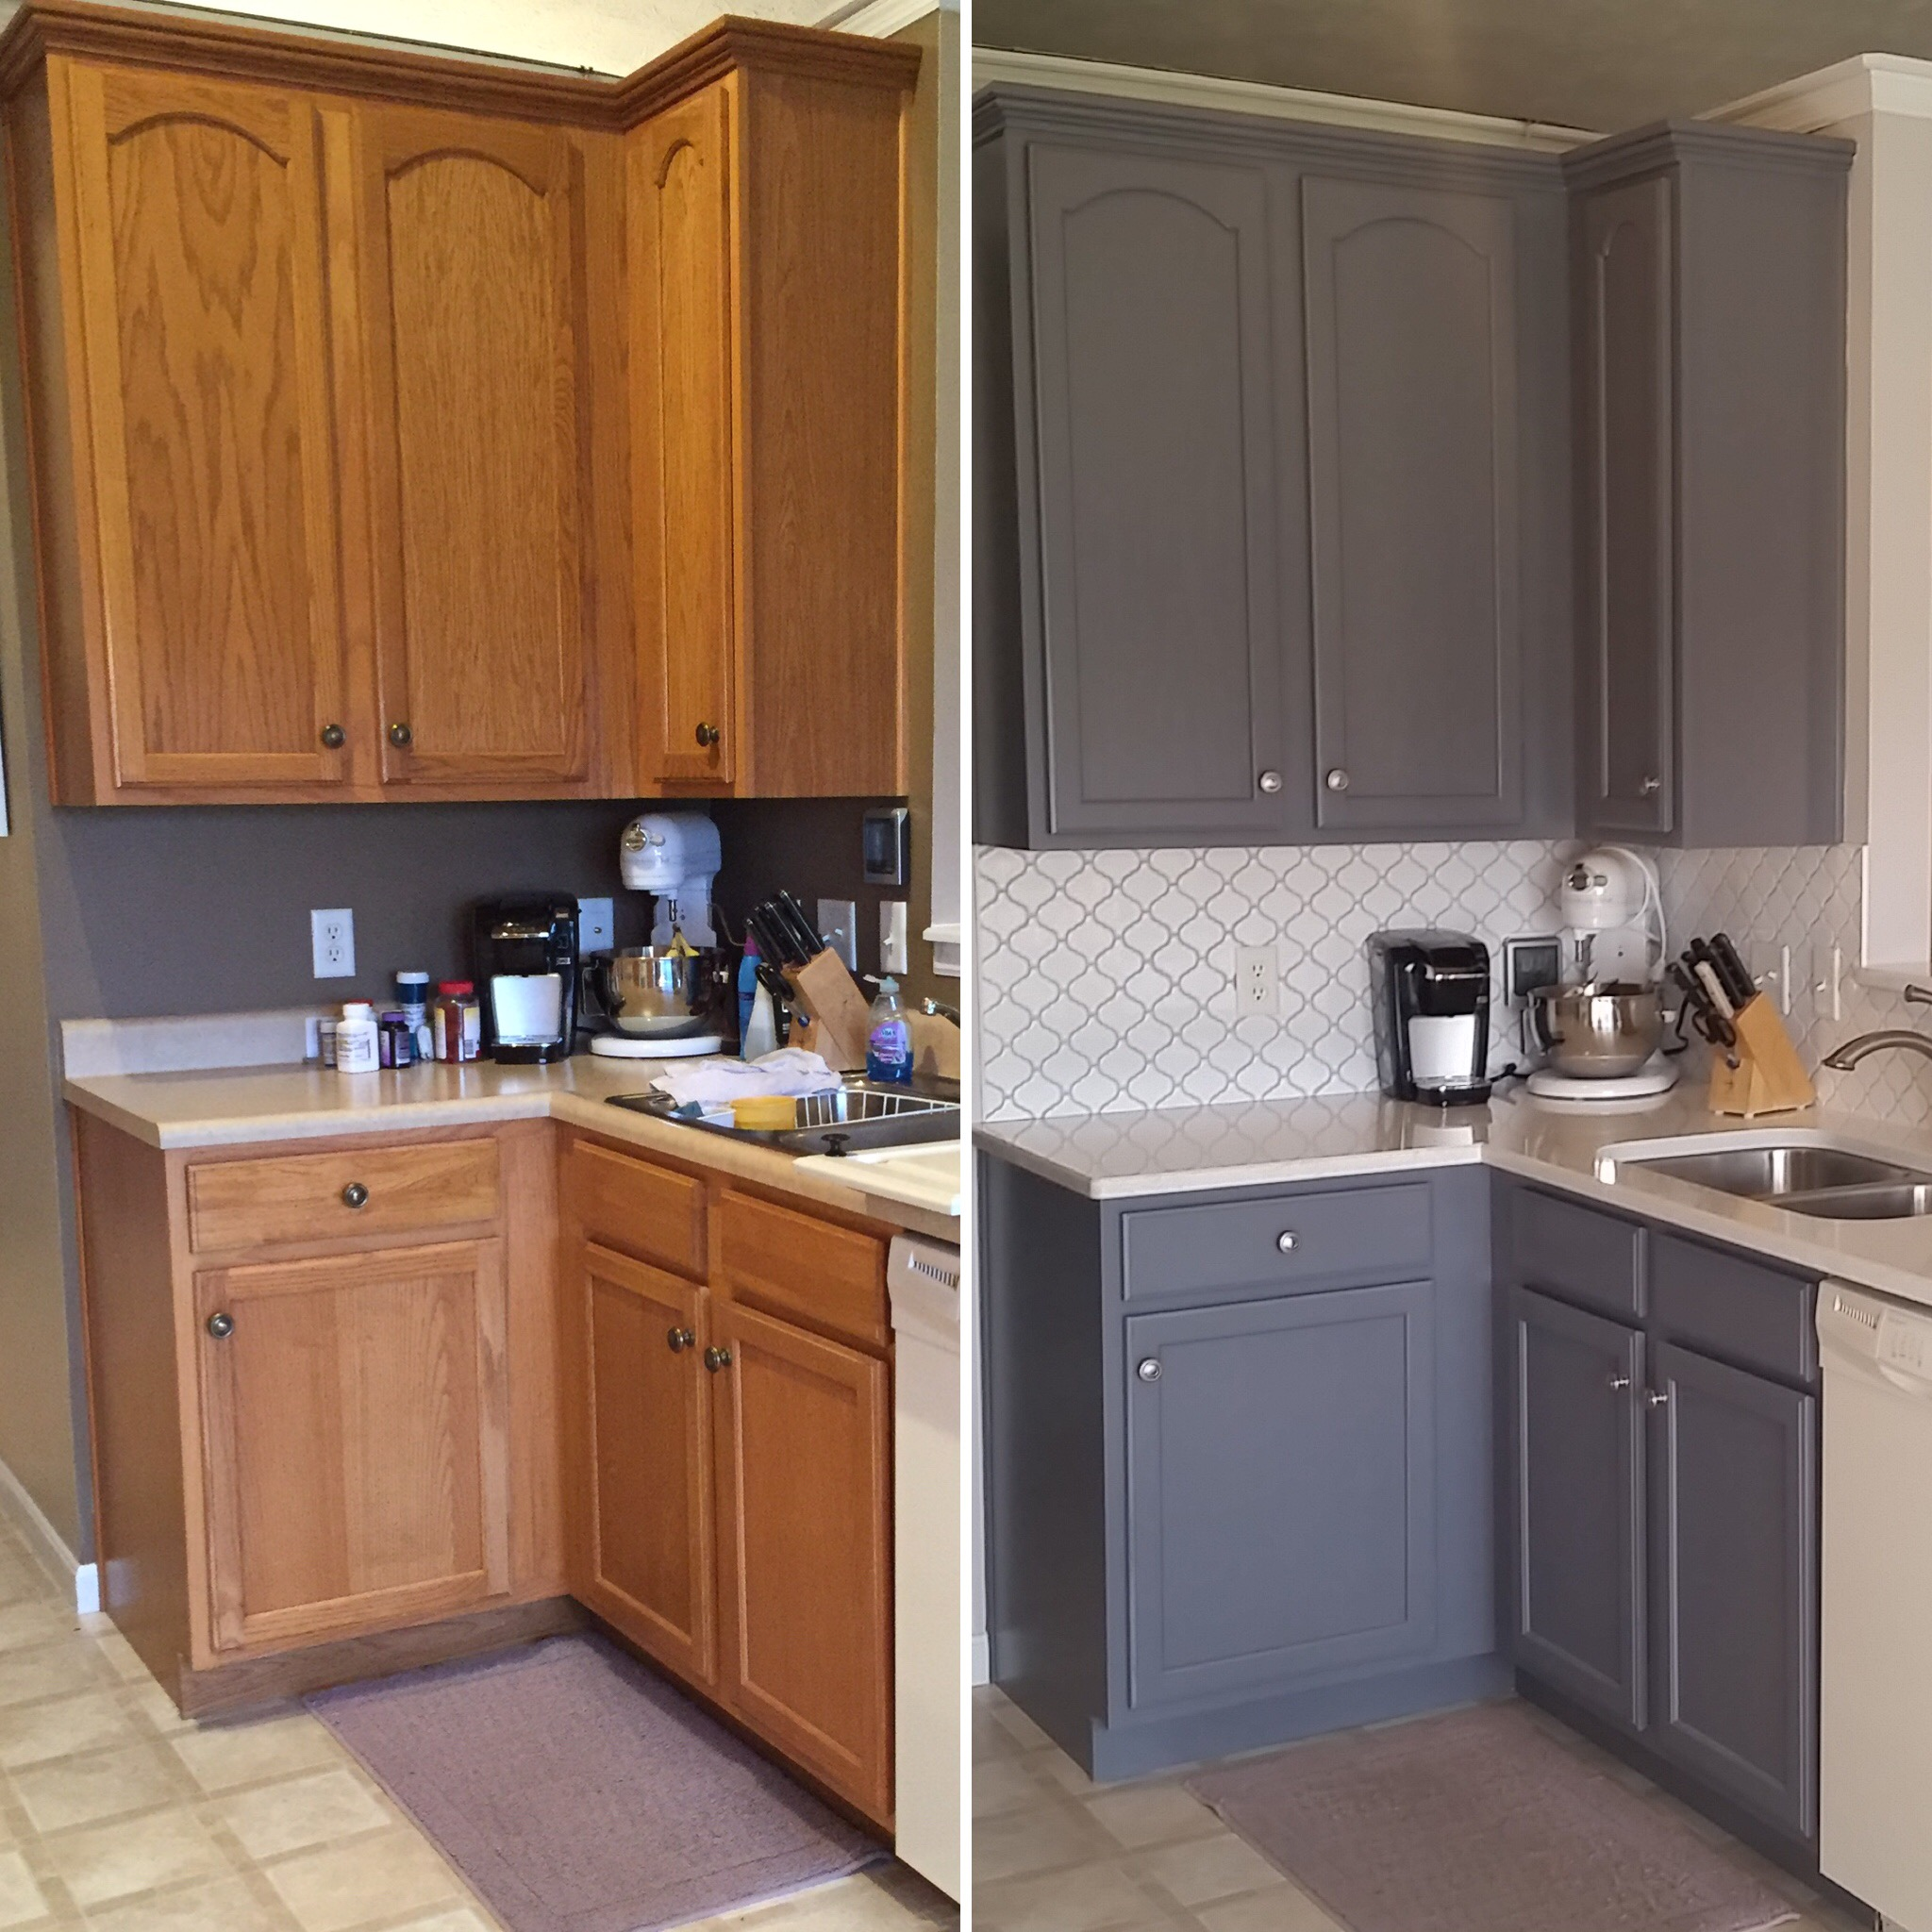 painted kitchen cabinets & painted kitchen cabinets Archives - Evolution of Style